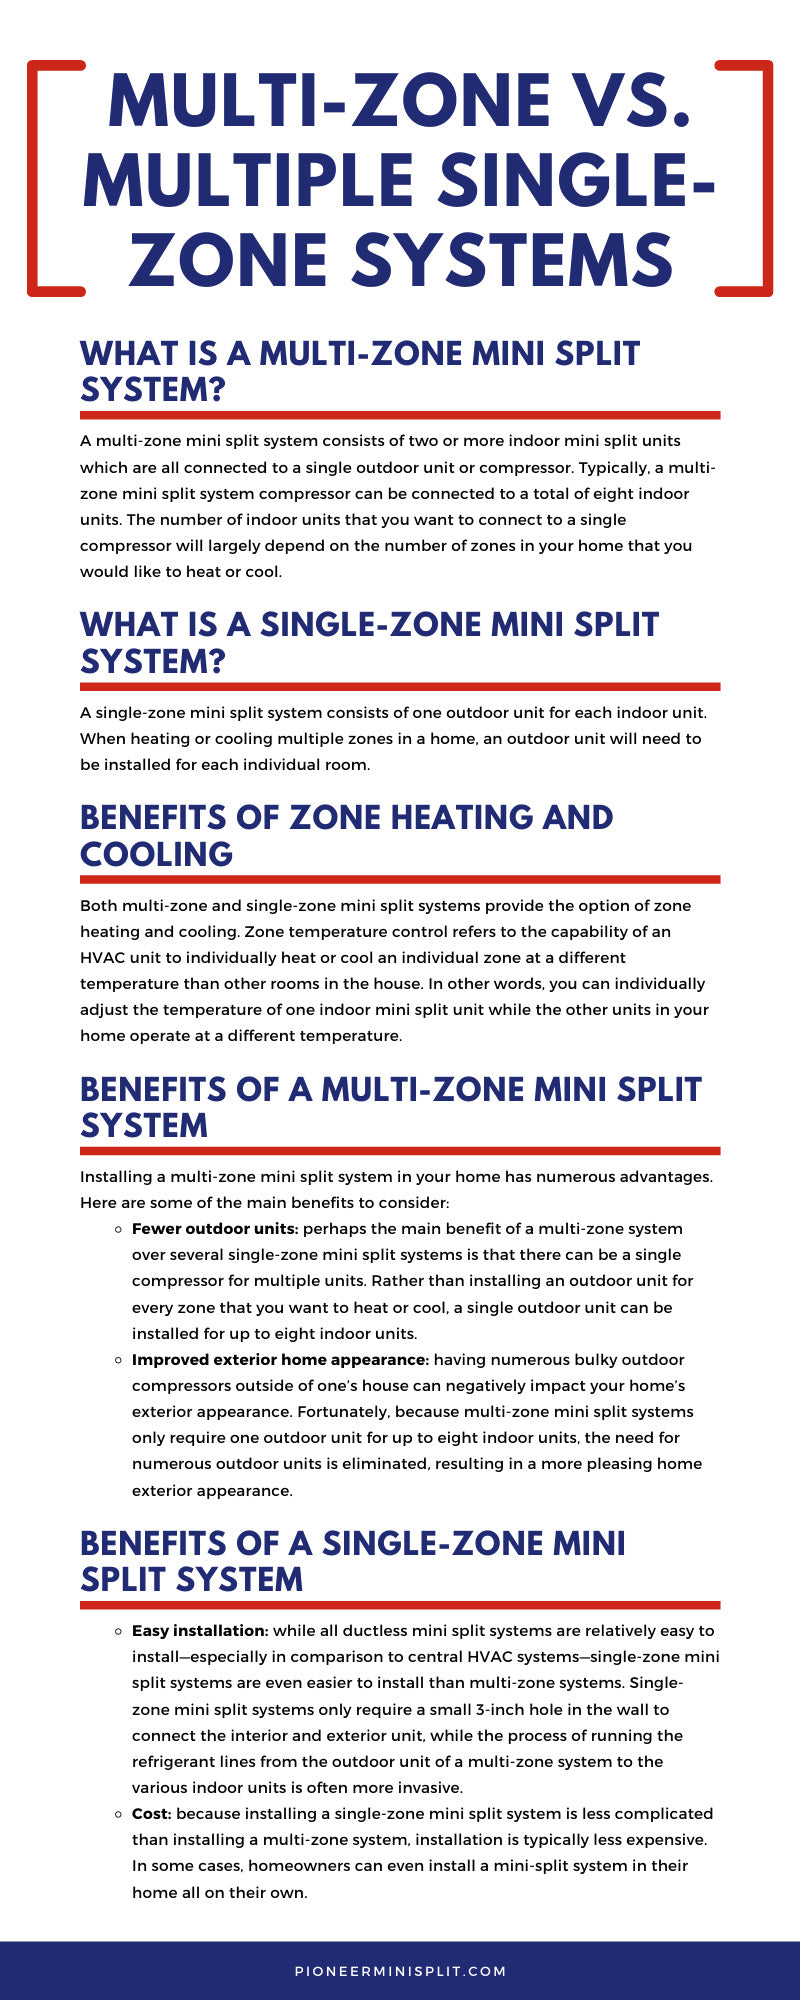 Multi-Zone vs. Single-Zone Systems